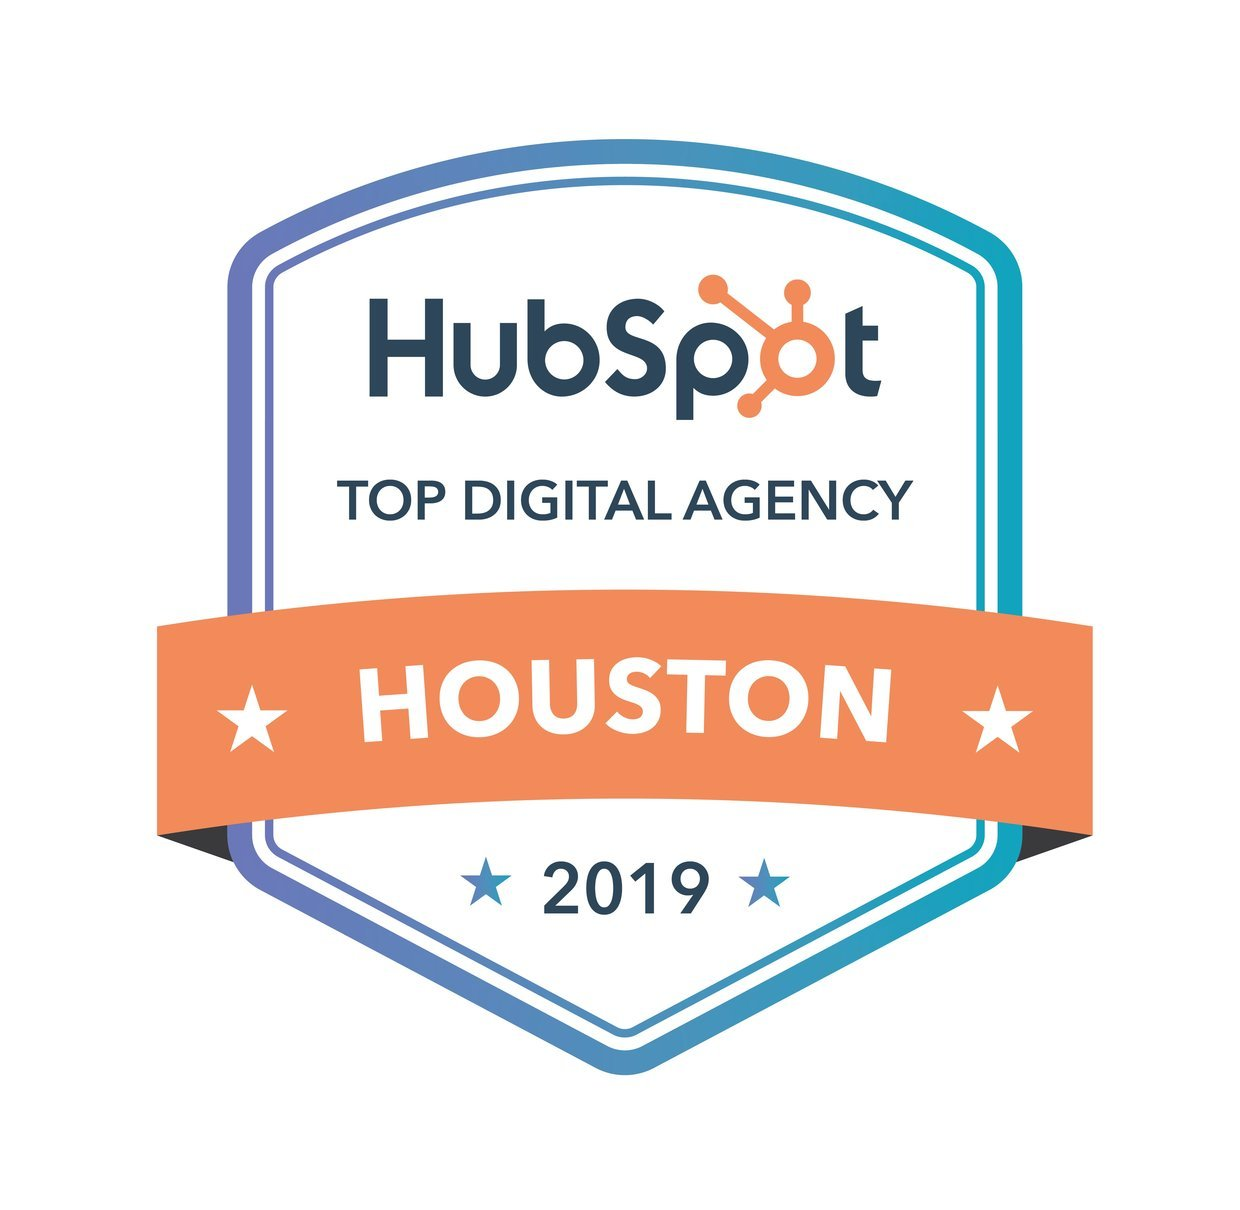 On-Target! Makreting | Digital Marketers In Houston | On-Target! Named Top HubSpot Agency in Houston